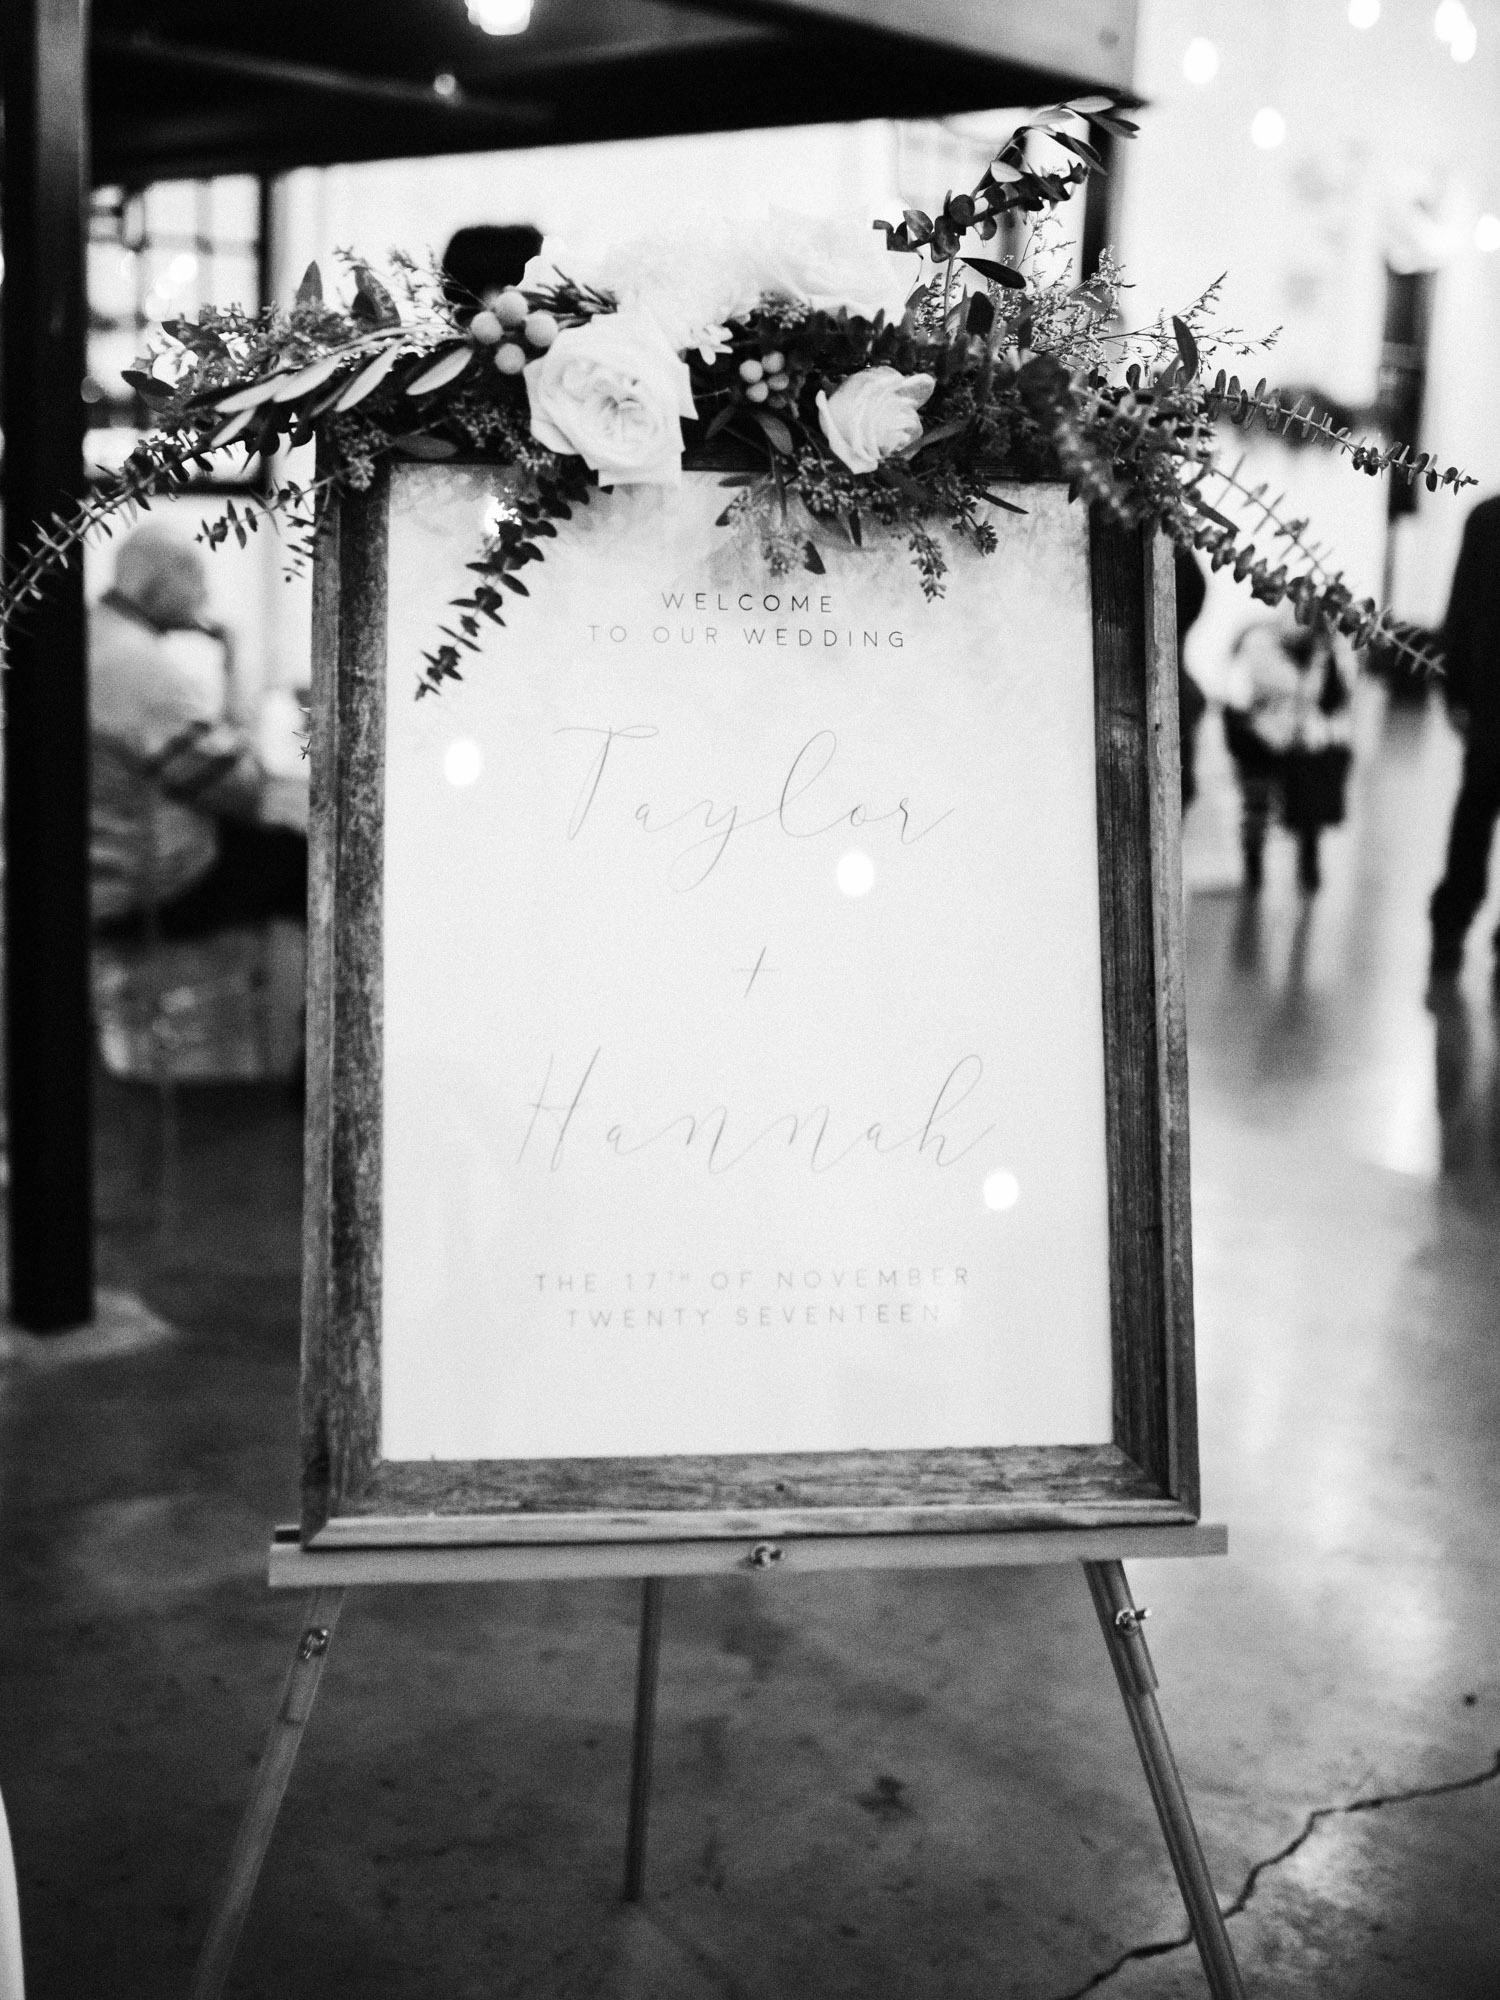 A welcome sign at The Brick wedding reception space in South Bend, Indiana